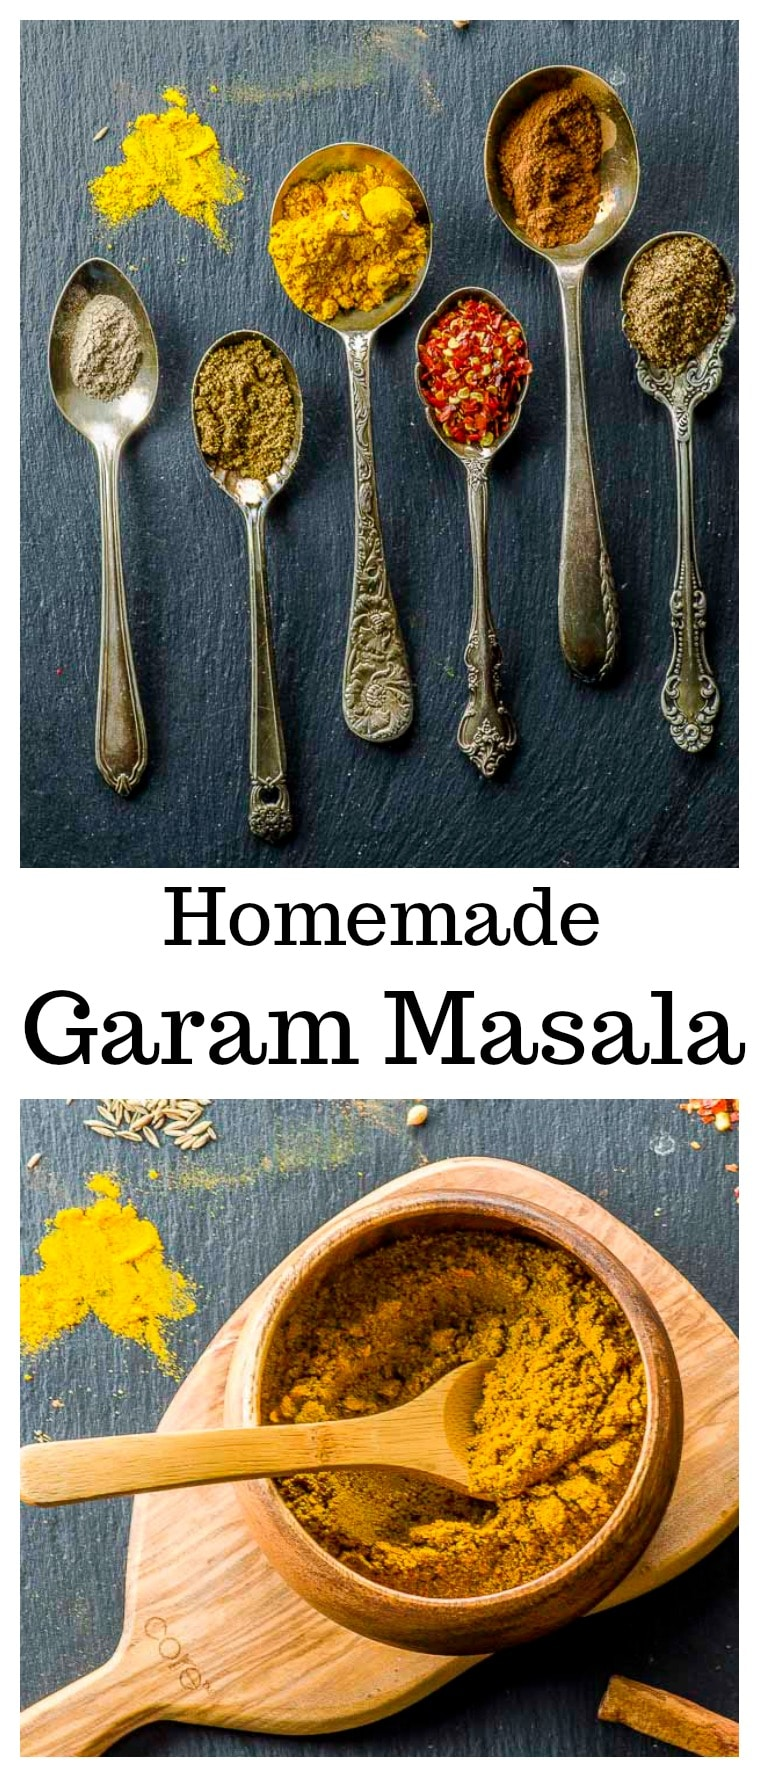 From sweet to pungent, our Homemade Garam Masala spice blend stays true to its Ayurvedic roots – it awakens the palate and delivers a balance of flavors to your food that will create optimal health. #Garam Masala #Spice Mix #Curry #Indian #Recipes #Vegan #Spciy